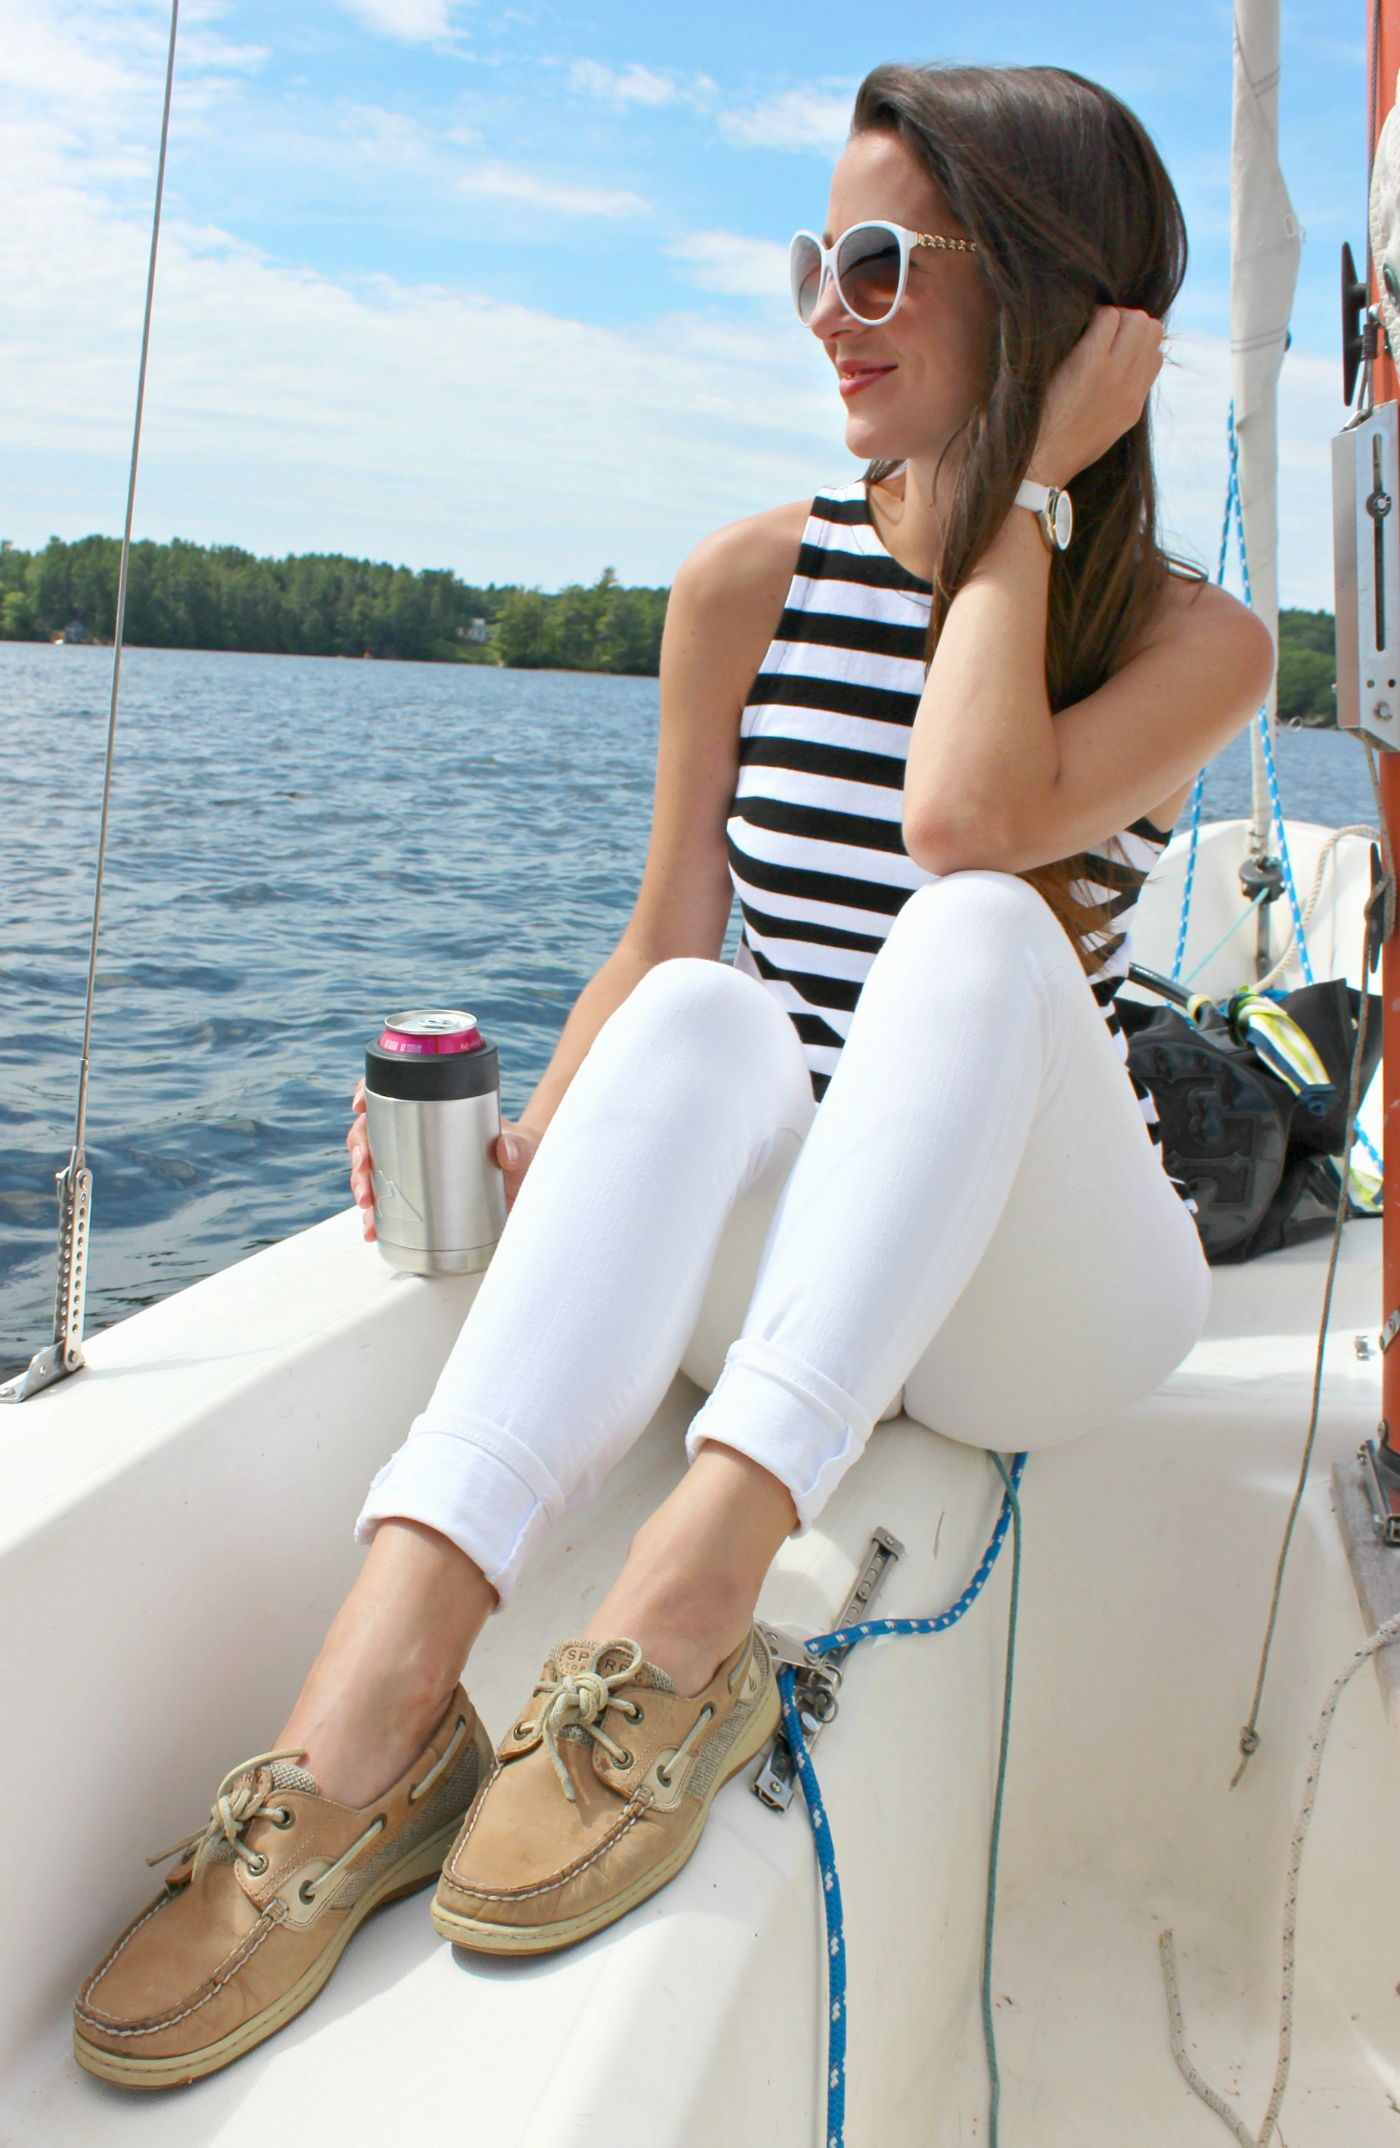 a4fc8ade188 Looking for a cute and practical sailing outfit idea for women  This Banana  Republic striped rugby tank styled with white skinny jeans